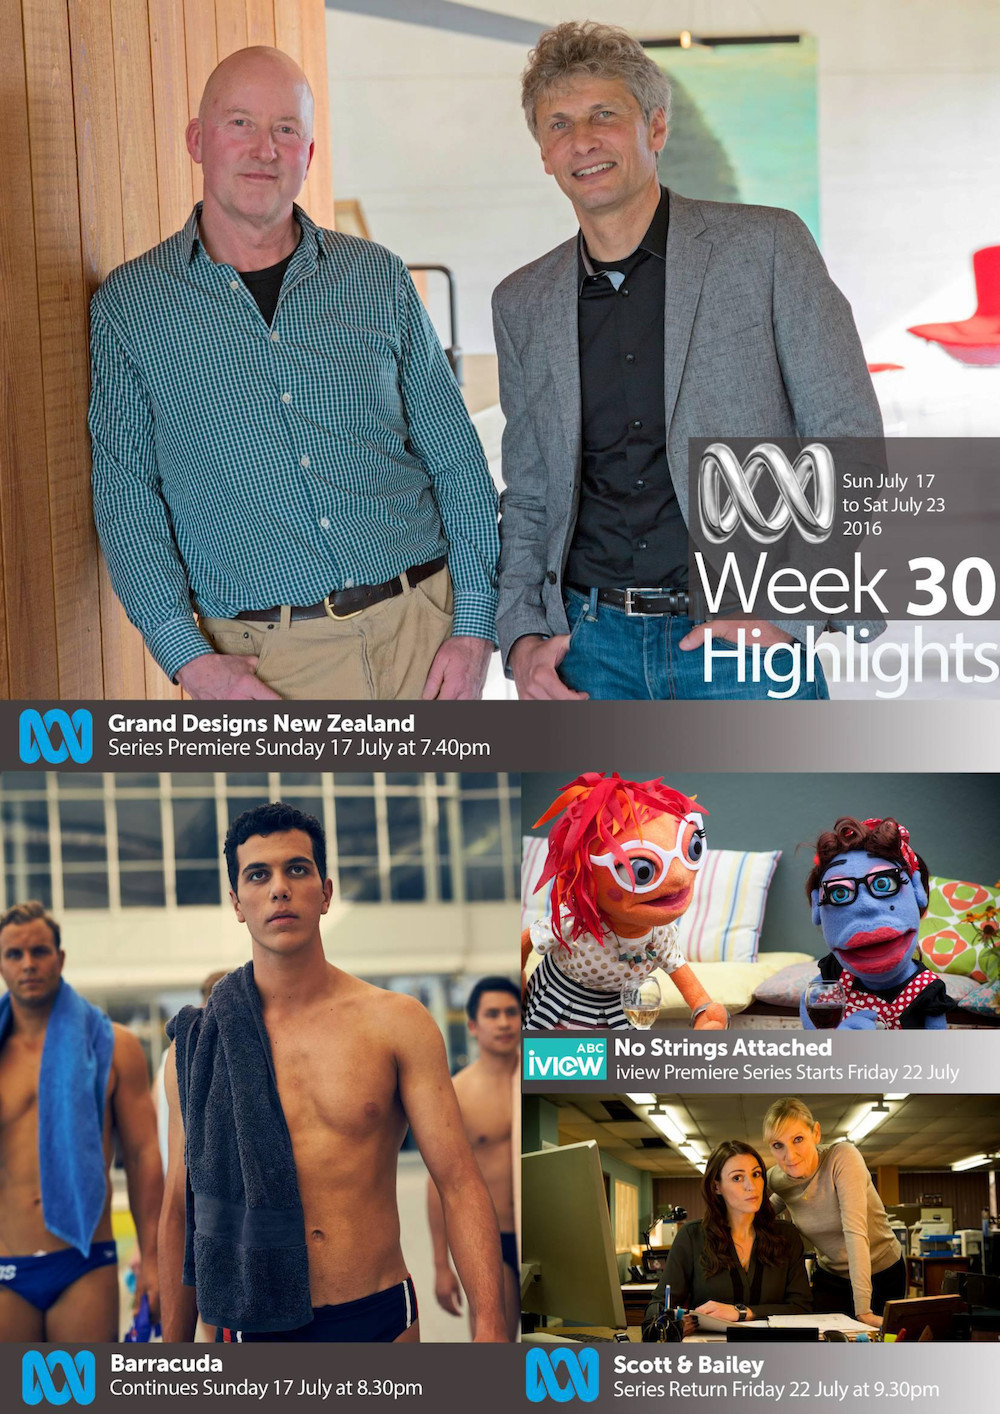 ABC Program Highlights - Week 30